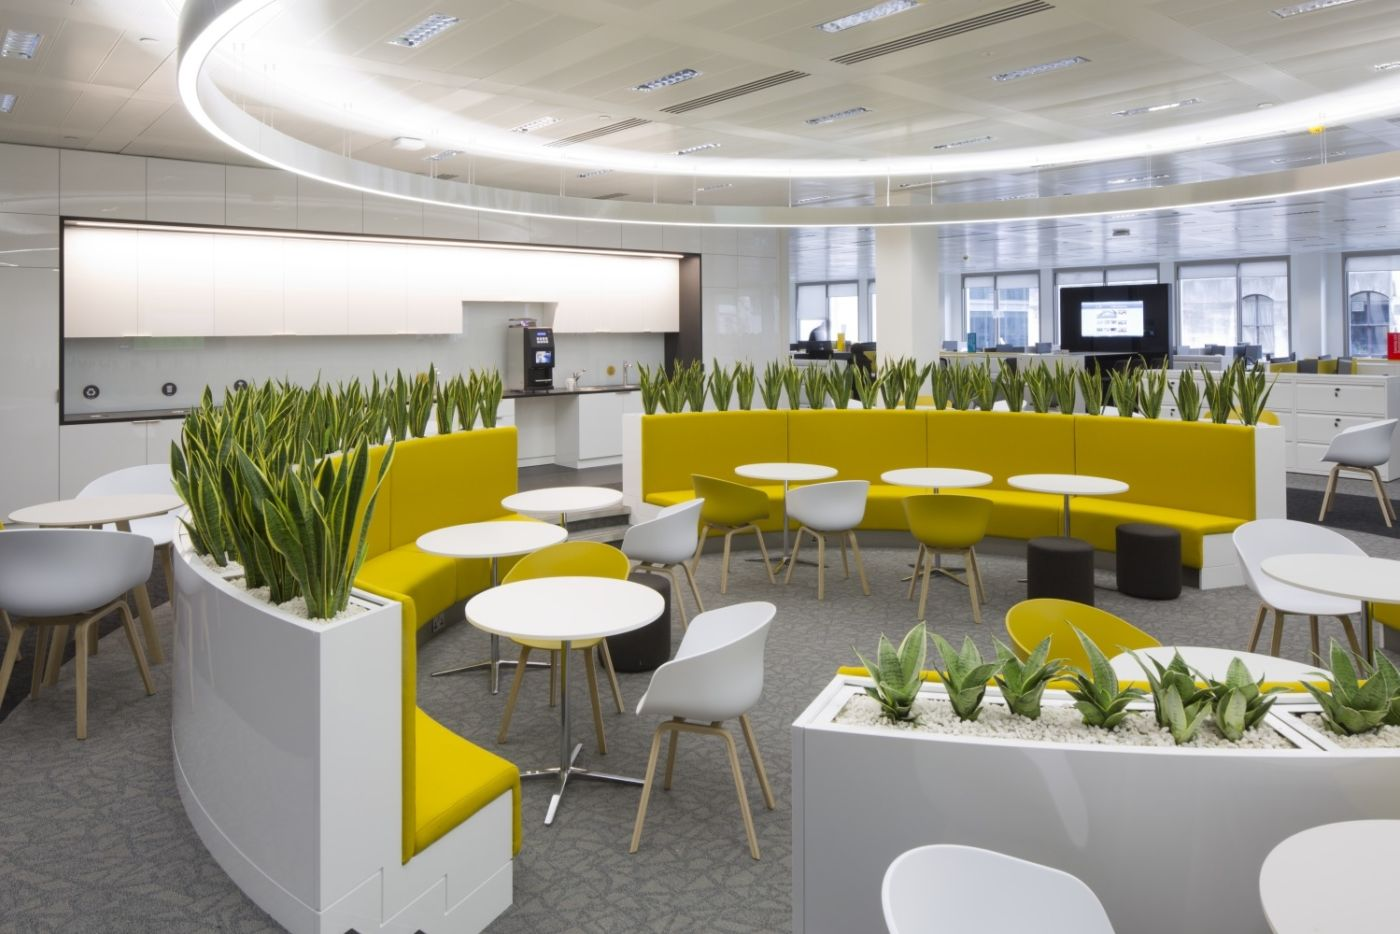 Modern office with circular seating area surrounded by plants